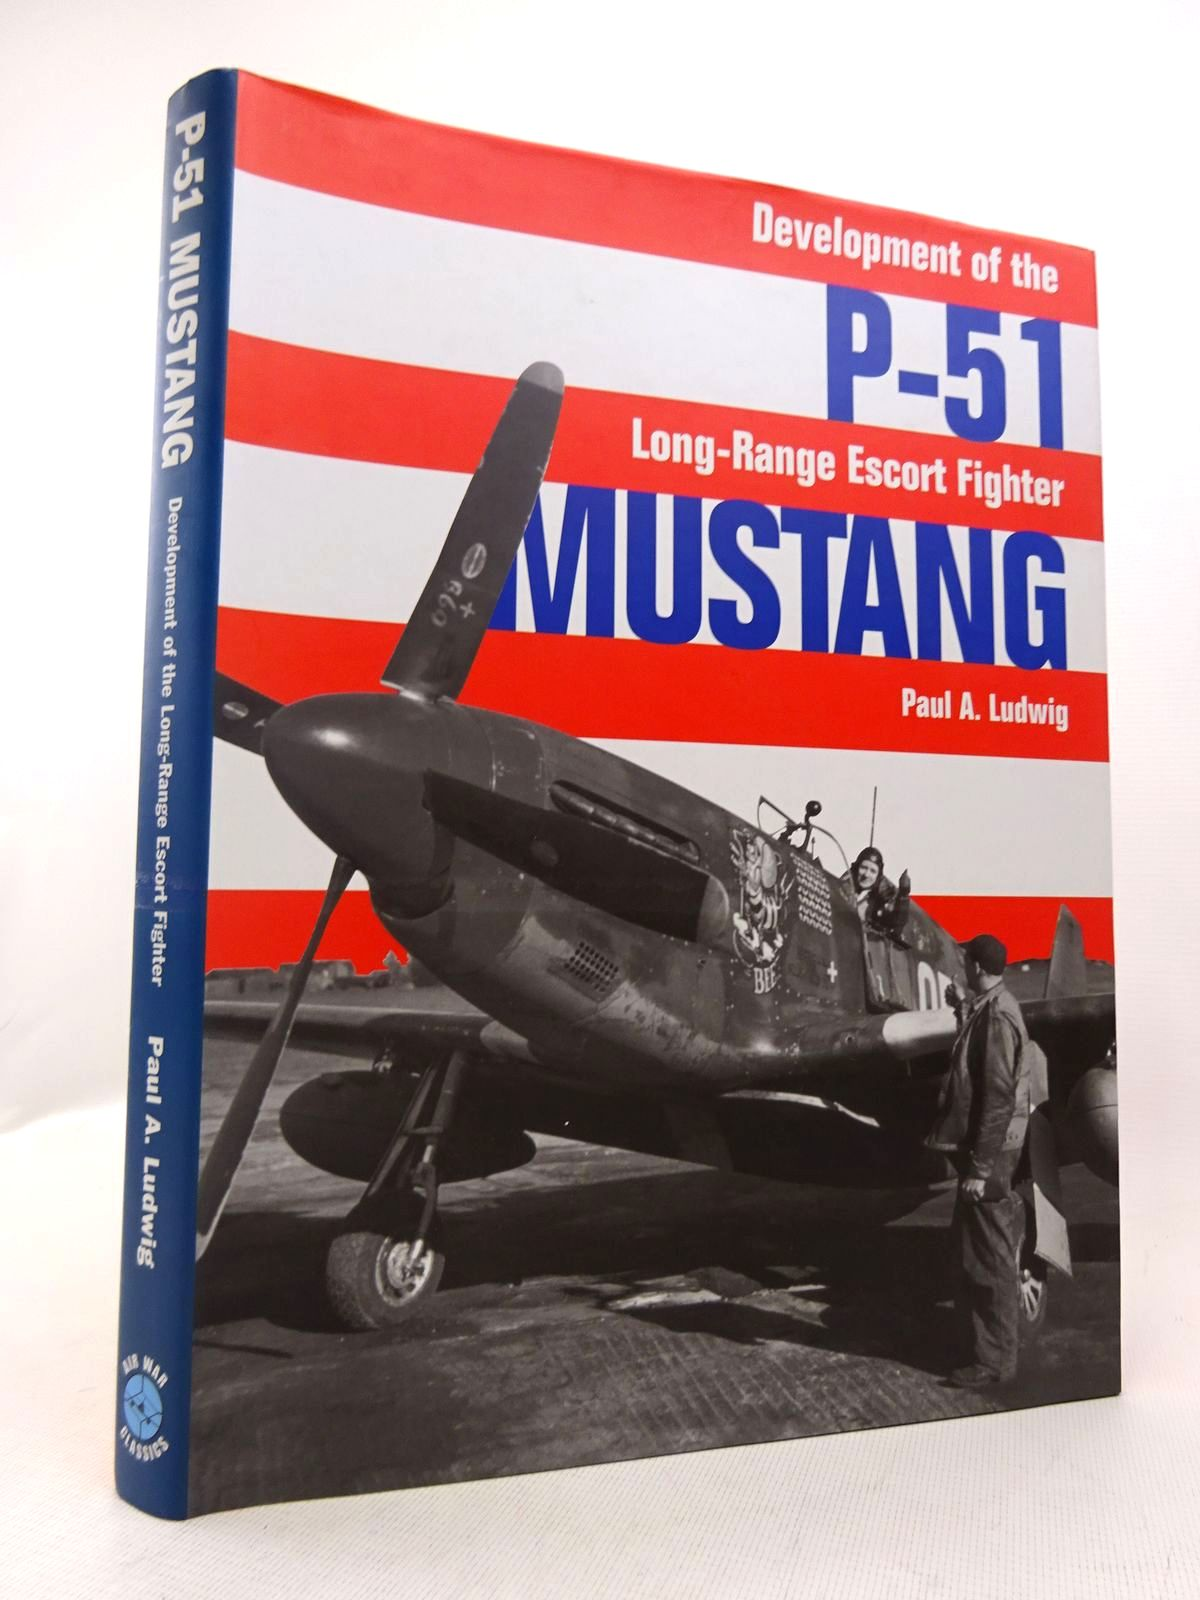 Photo of DEVELOPMENT OF THE P-51 LONG-RANGE ESCORT FIGHTER MUSTANG written by Ludwig, Paul published by Classic Publications (STOCK CODE: 1816817)  for sale by Stella & Rose's Books